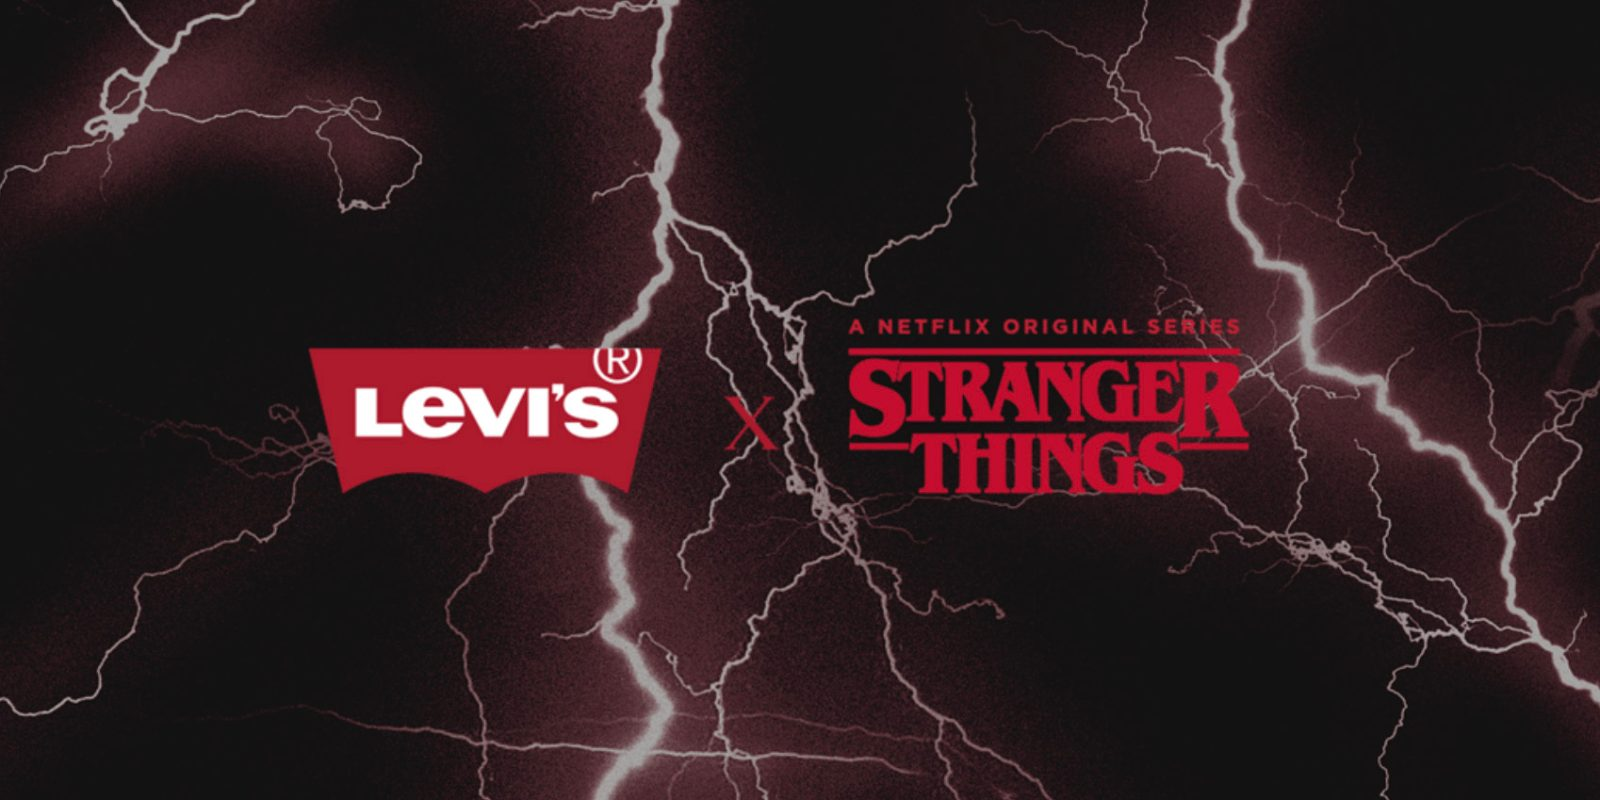 b31f5da66 Levi's partners with Stranger Things for a new collaboration - 9to5Toys